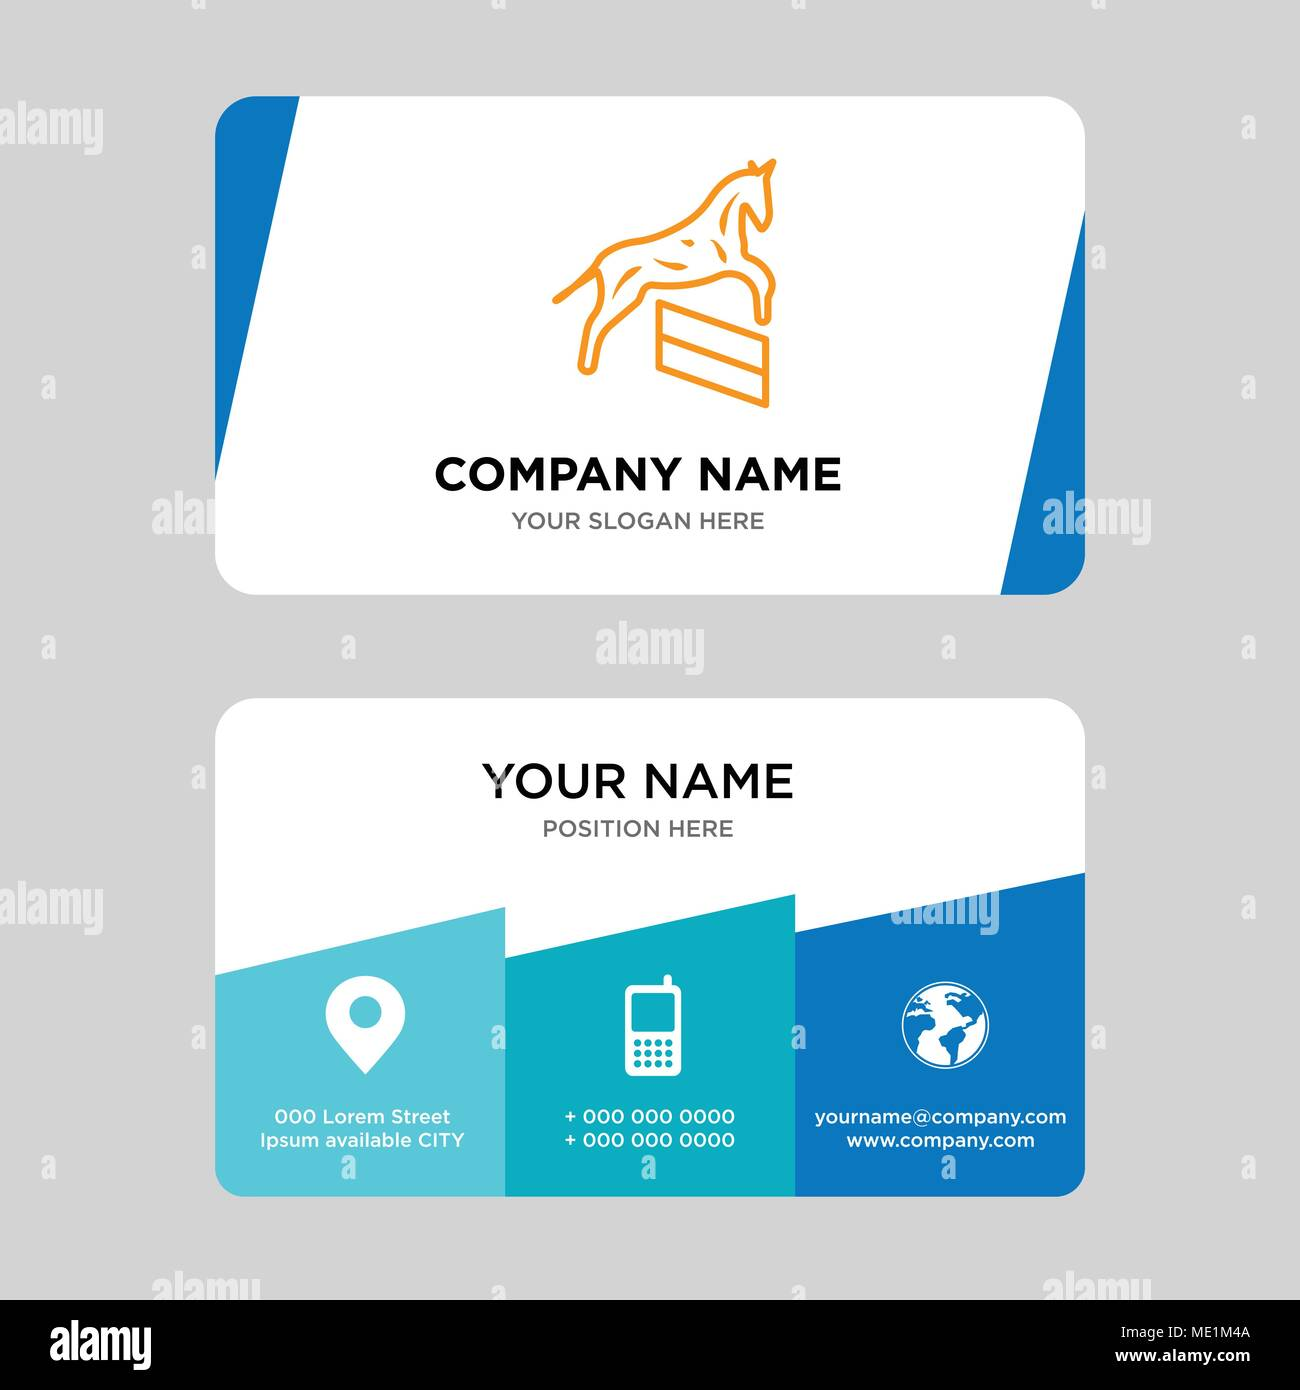 Horse business card design template visiting for your company horse business card design template visiting for your company modern creative and clean identity card vector illustration colourmoves